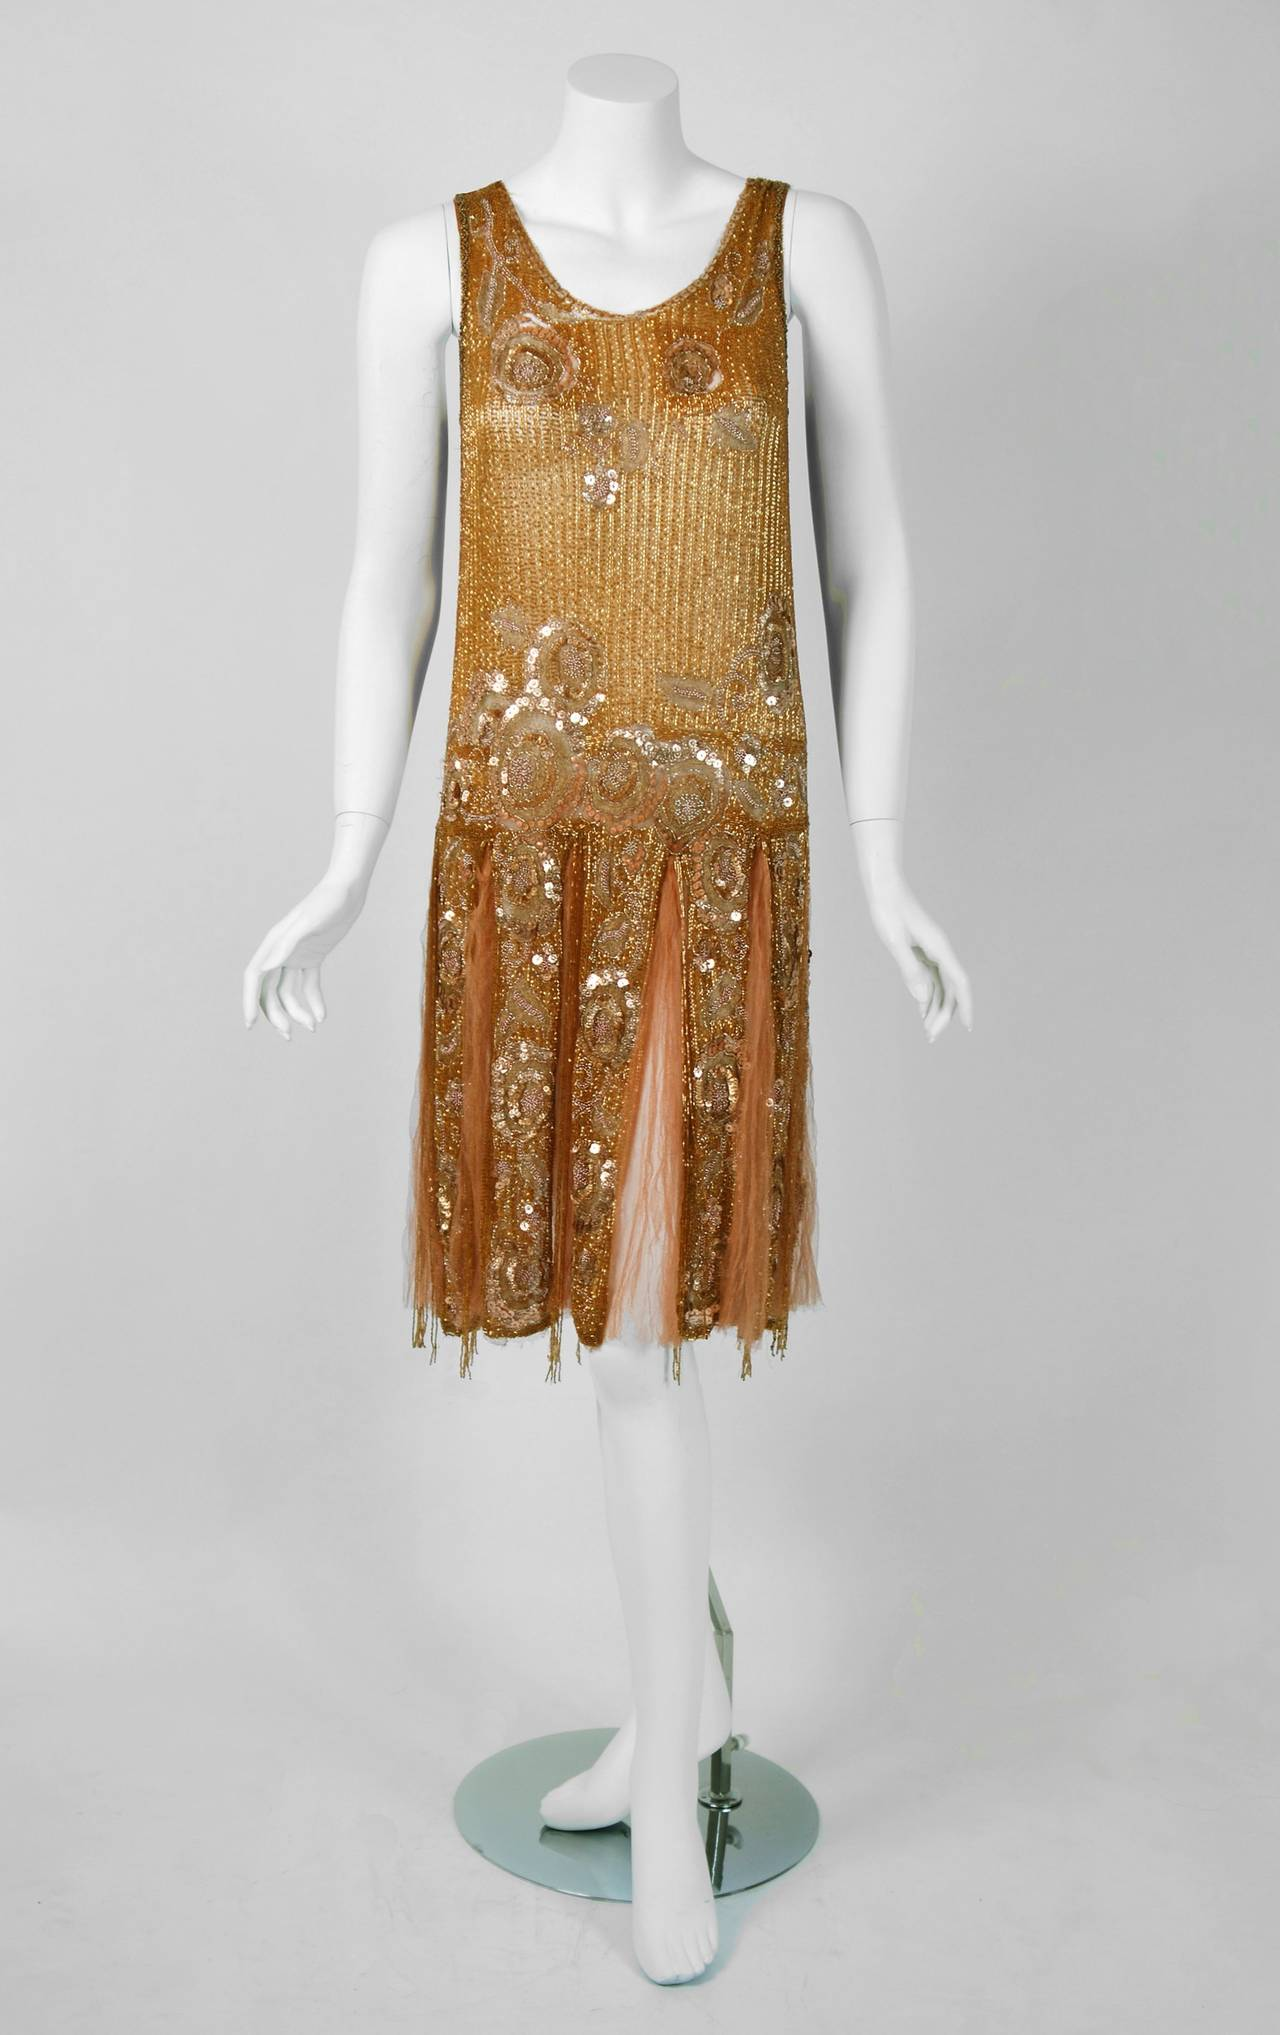 There are lots of lovely 1920's garments still around, but every once in a while I come across one that sets my heart a flutter! This is an extraordinarily beautiful and exceptional 1920's metallic gold couture silk-net dance dress and matching